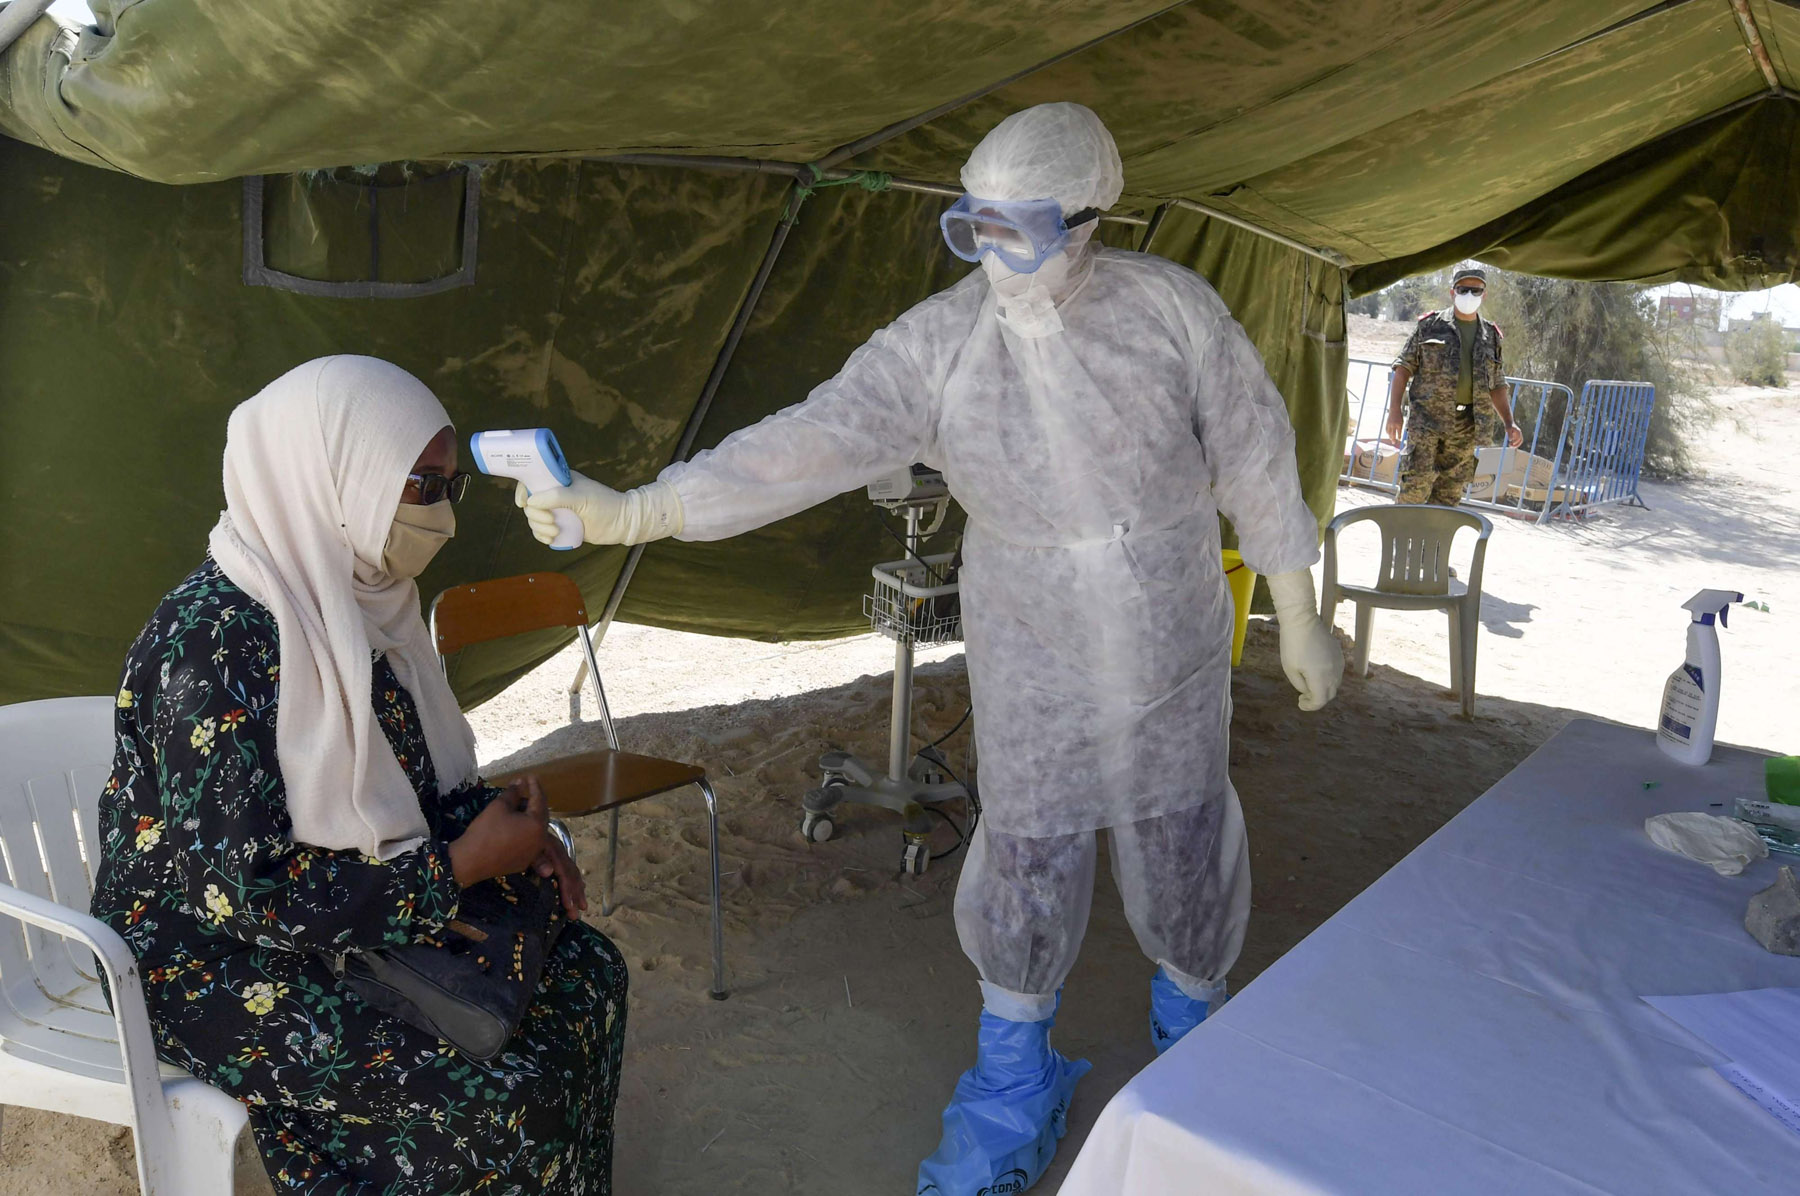 A nurse checks a woman's temperature before a covid-19 test at a military mobile hospital in the town of El-Hamma, in Tunisia's southwestern Gabes governorate, on August 26. (AFP)